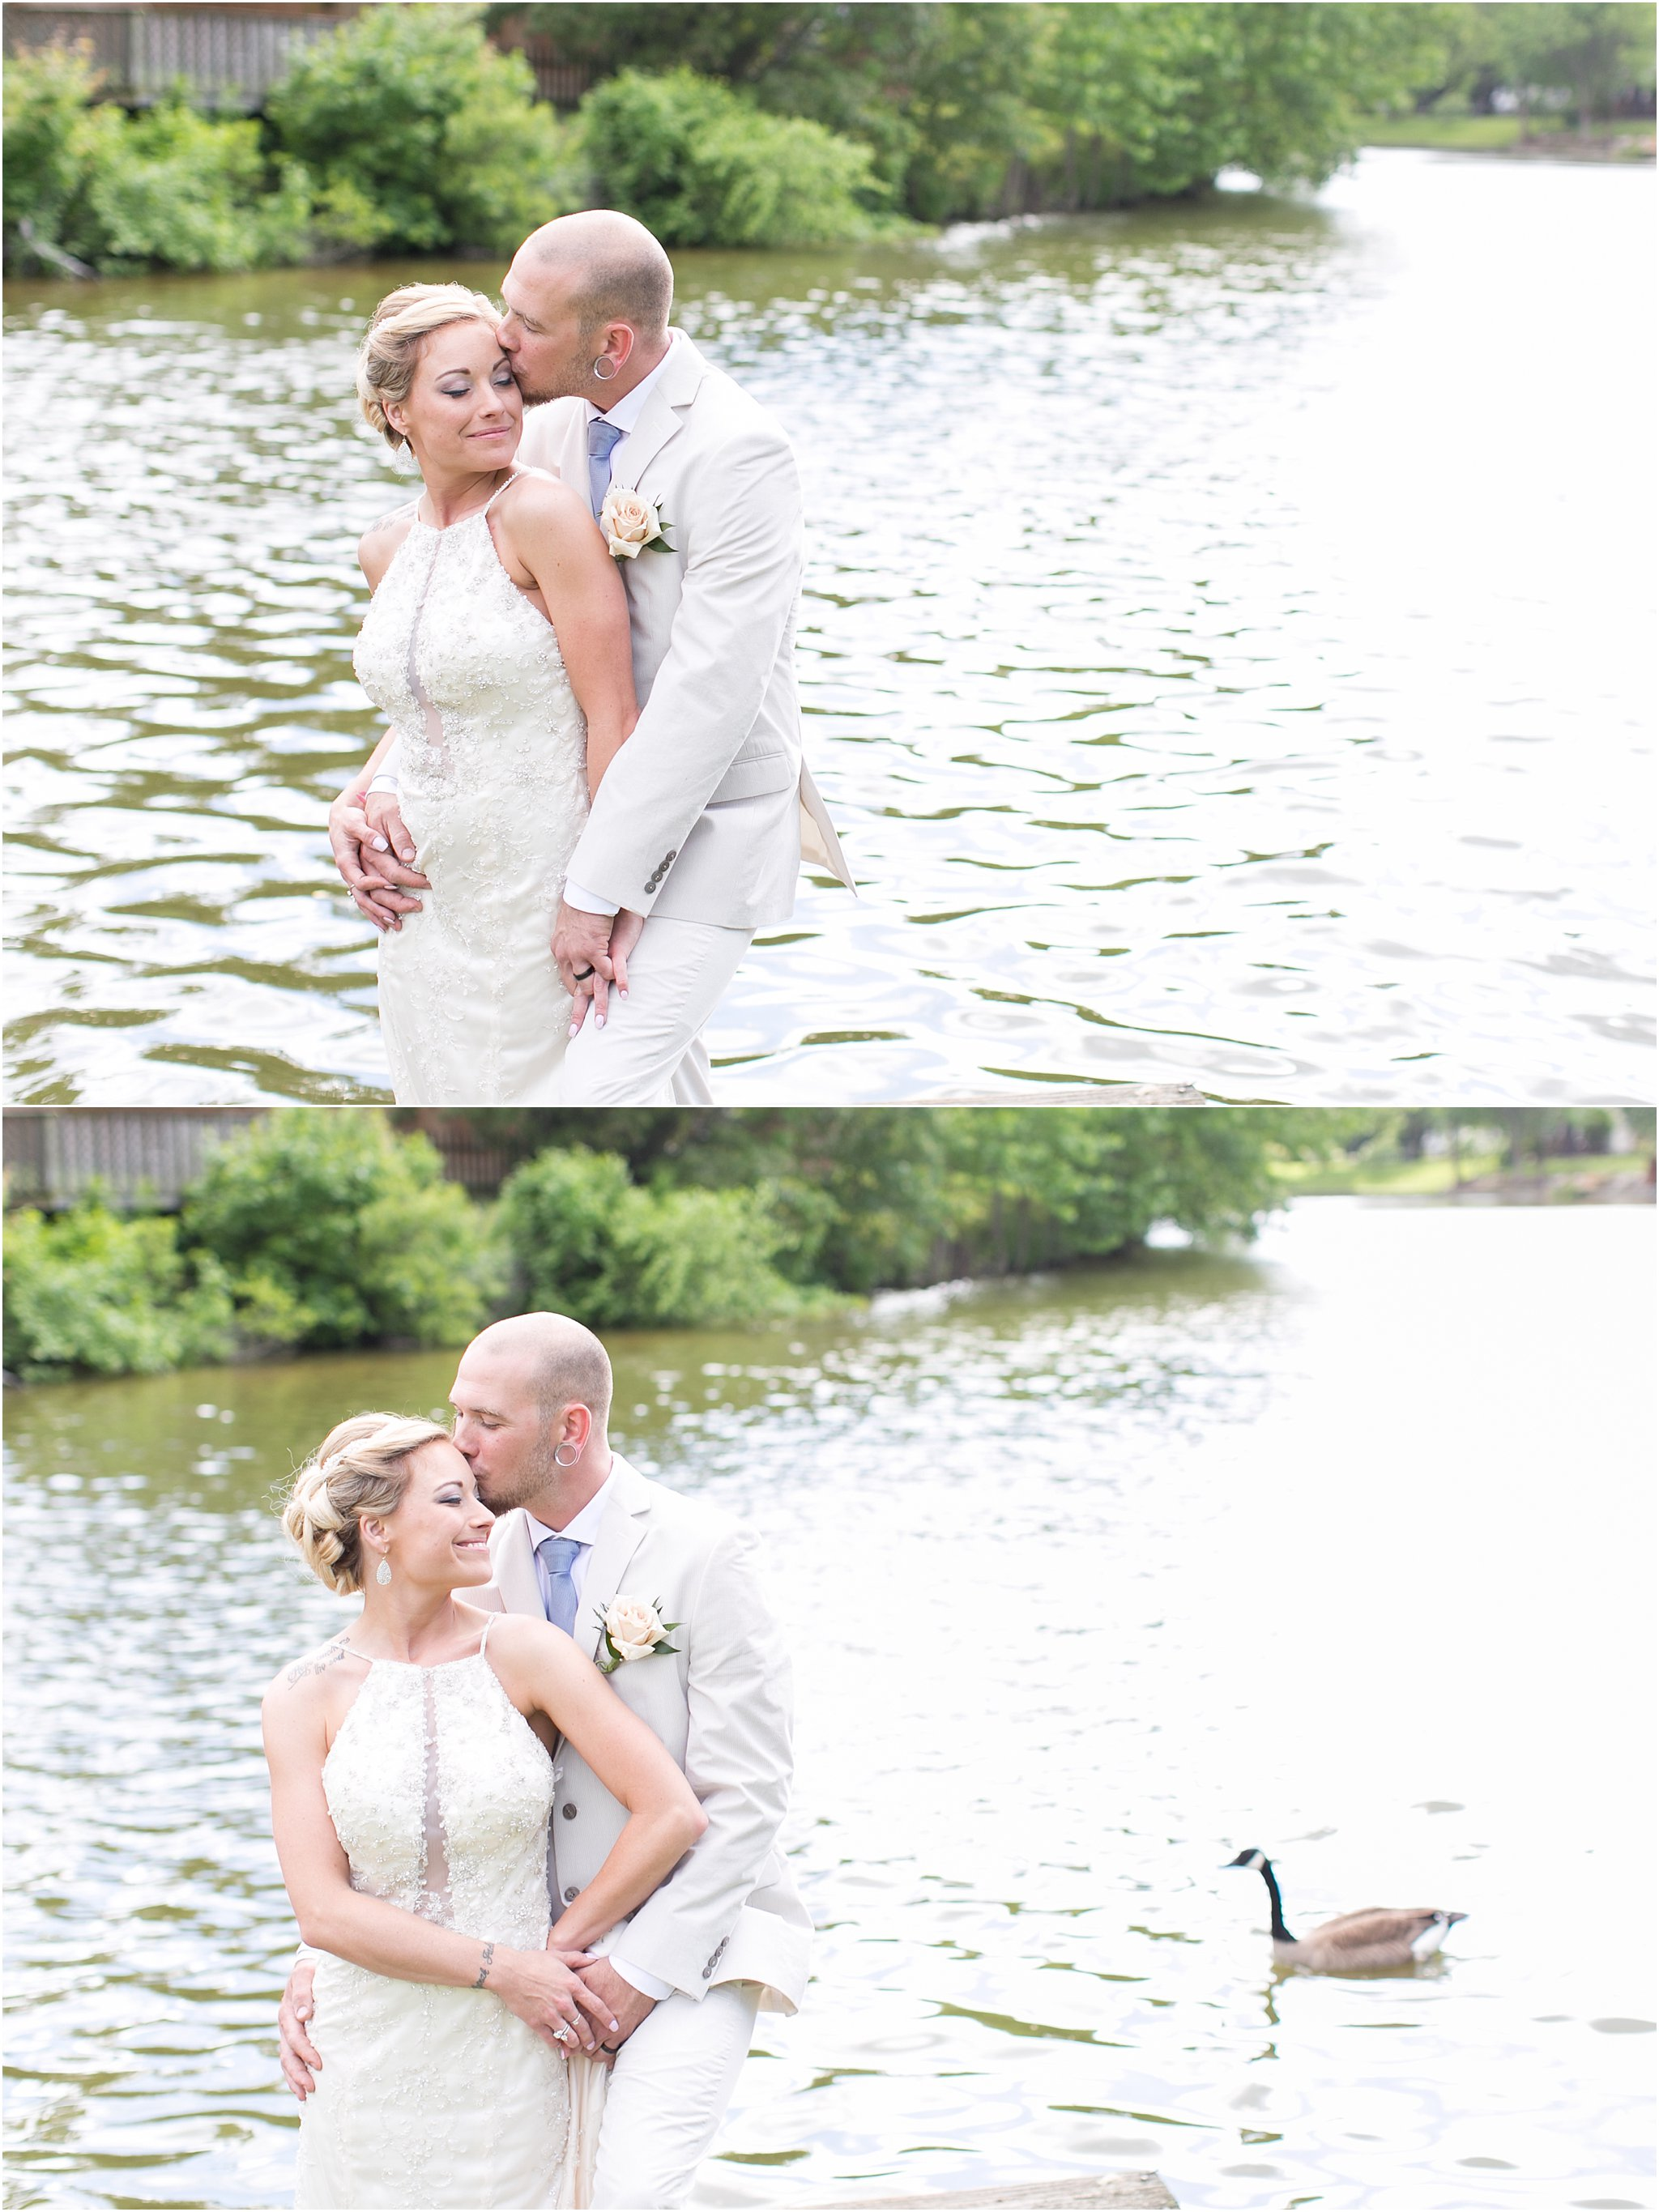 jessica_ryan_photography_virginia_virginiabeachweddingphotographer_studioIdo_backyardwedding_waterfrontwedding_1693